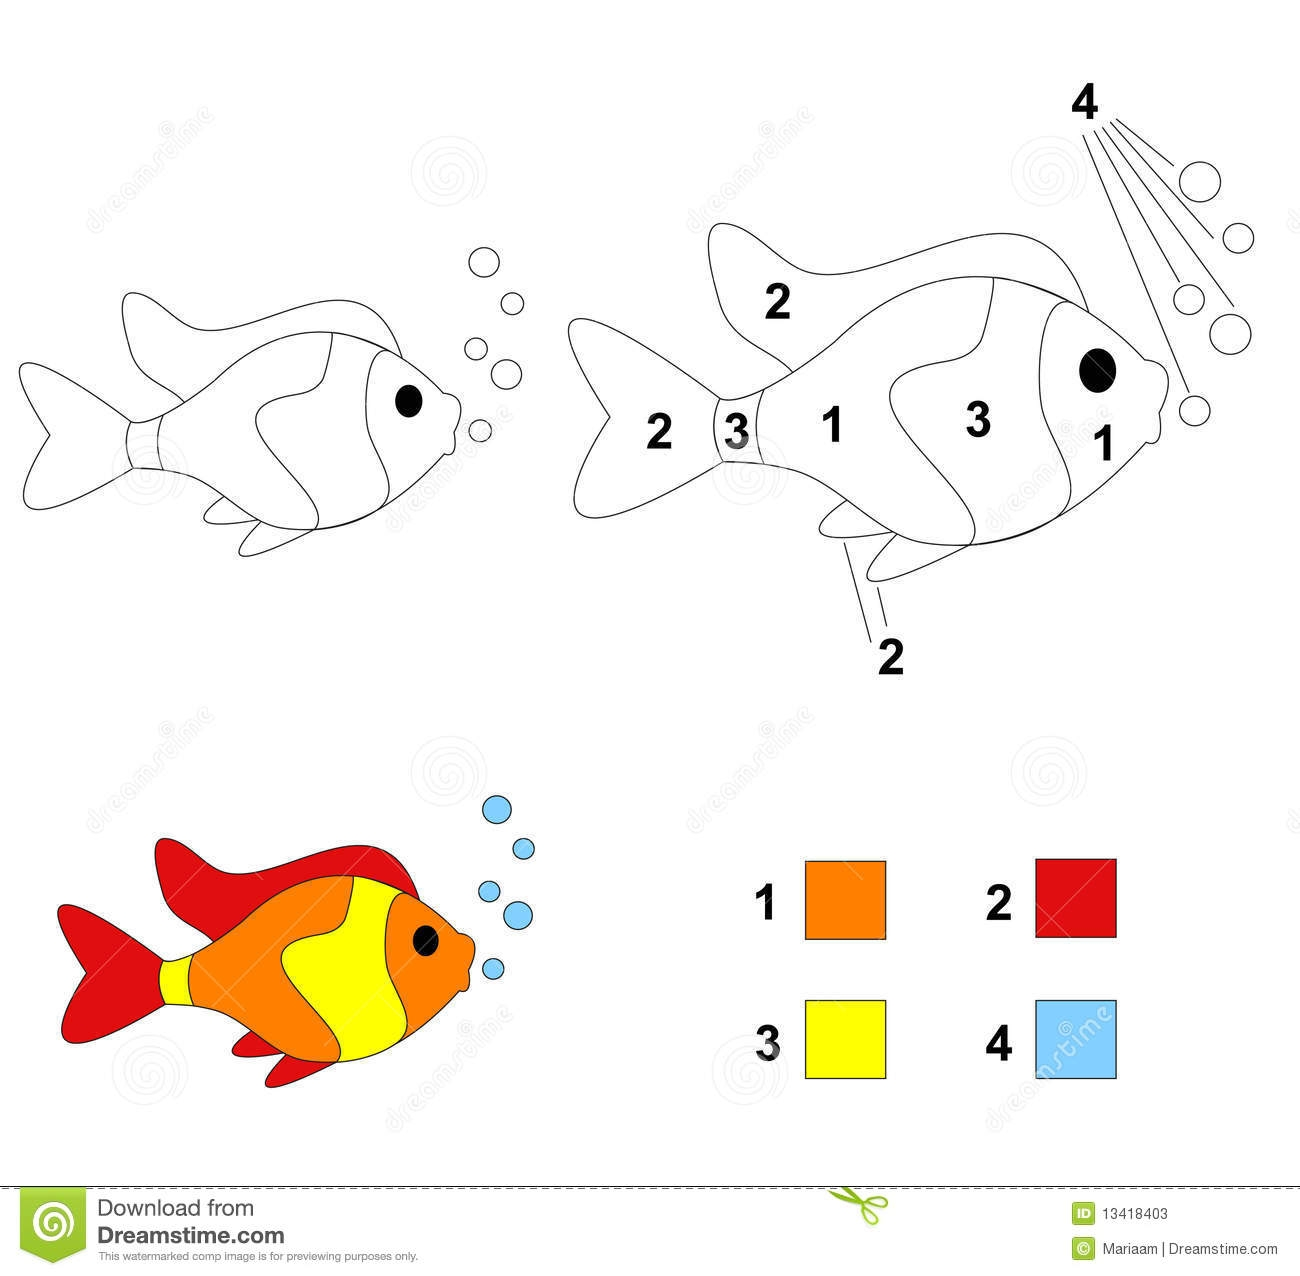 rainbow fish coloring page - stock photos color number game fish image